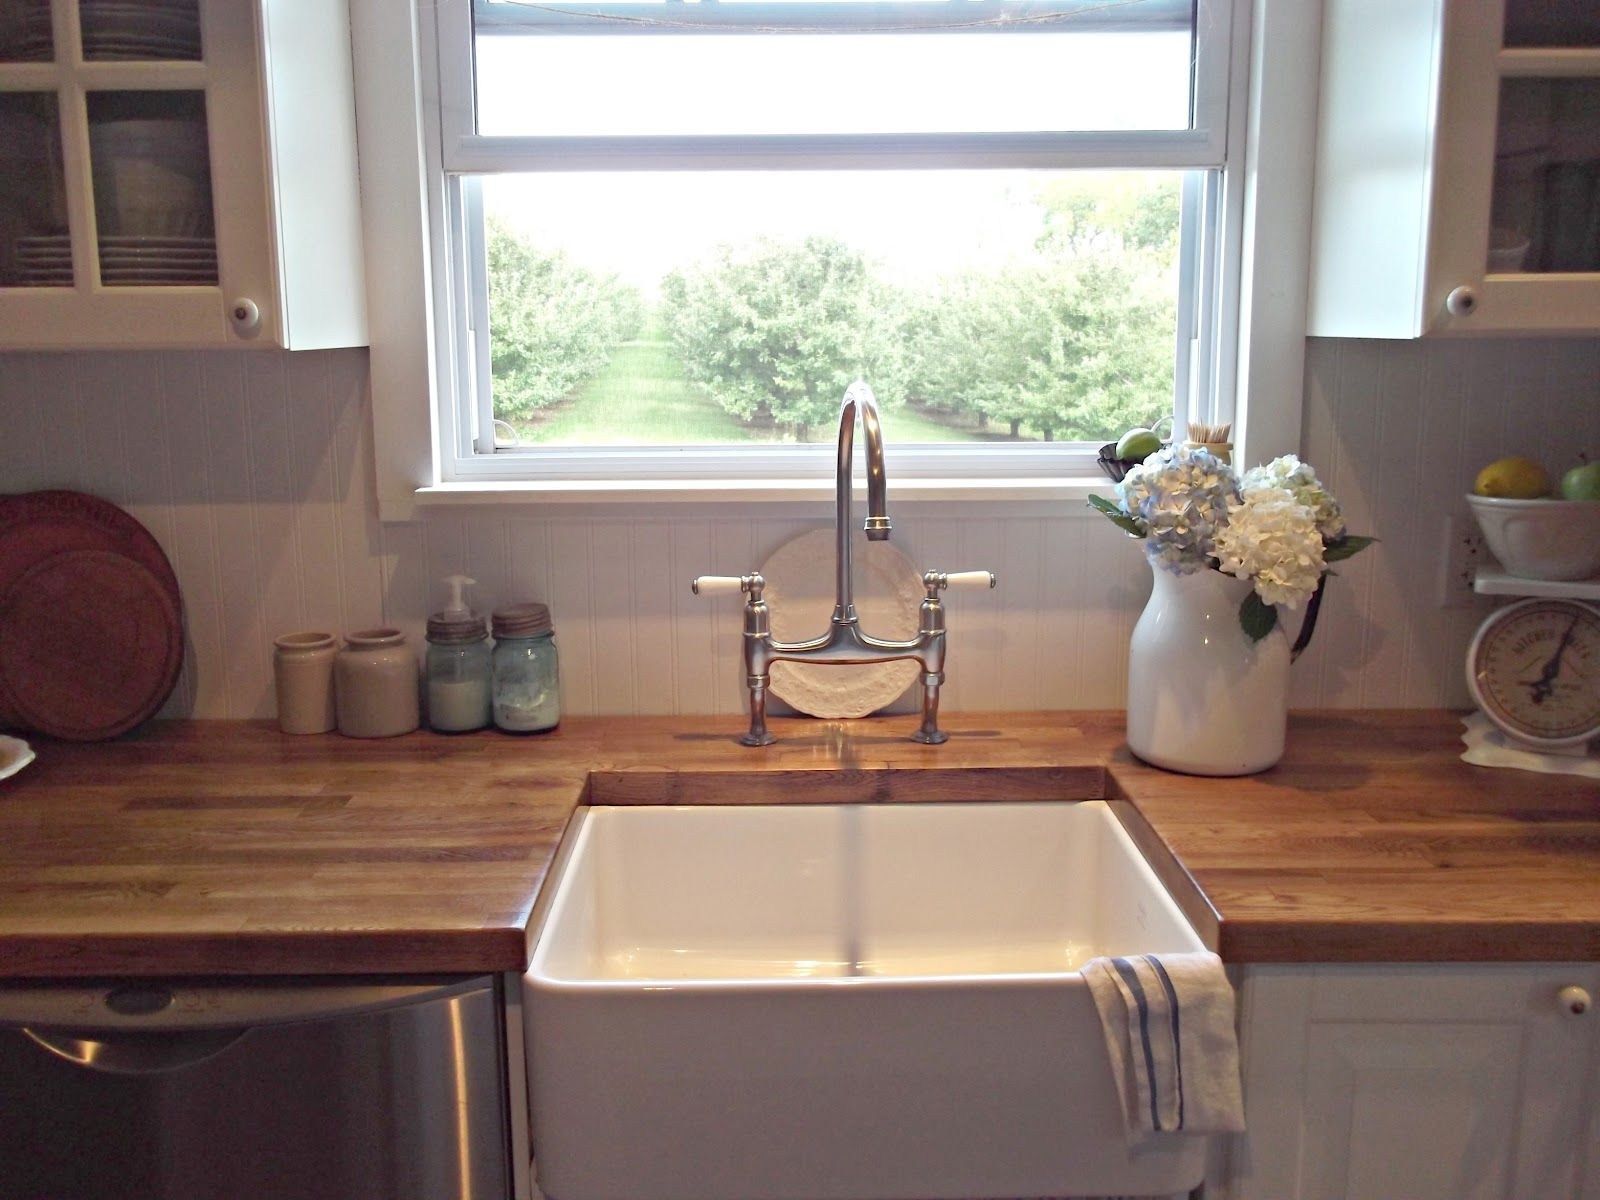 FARMHOUSE STYLE SINKS Rustic Farmhouse A Farm Style Sink